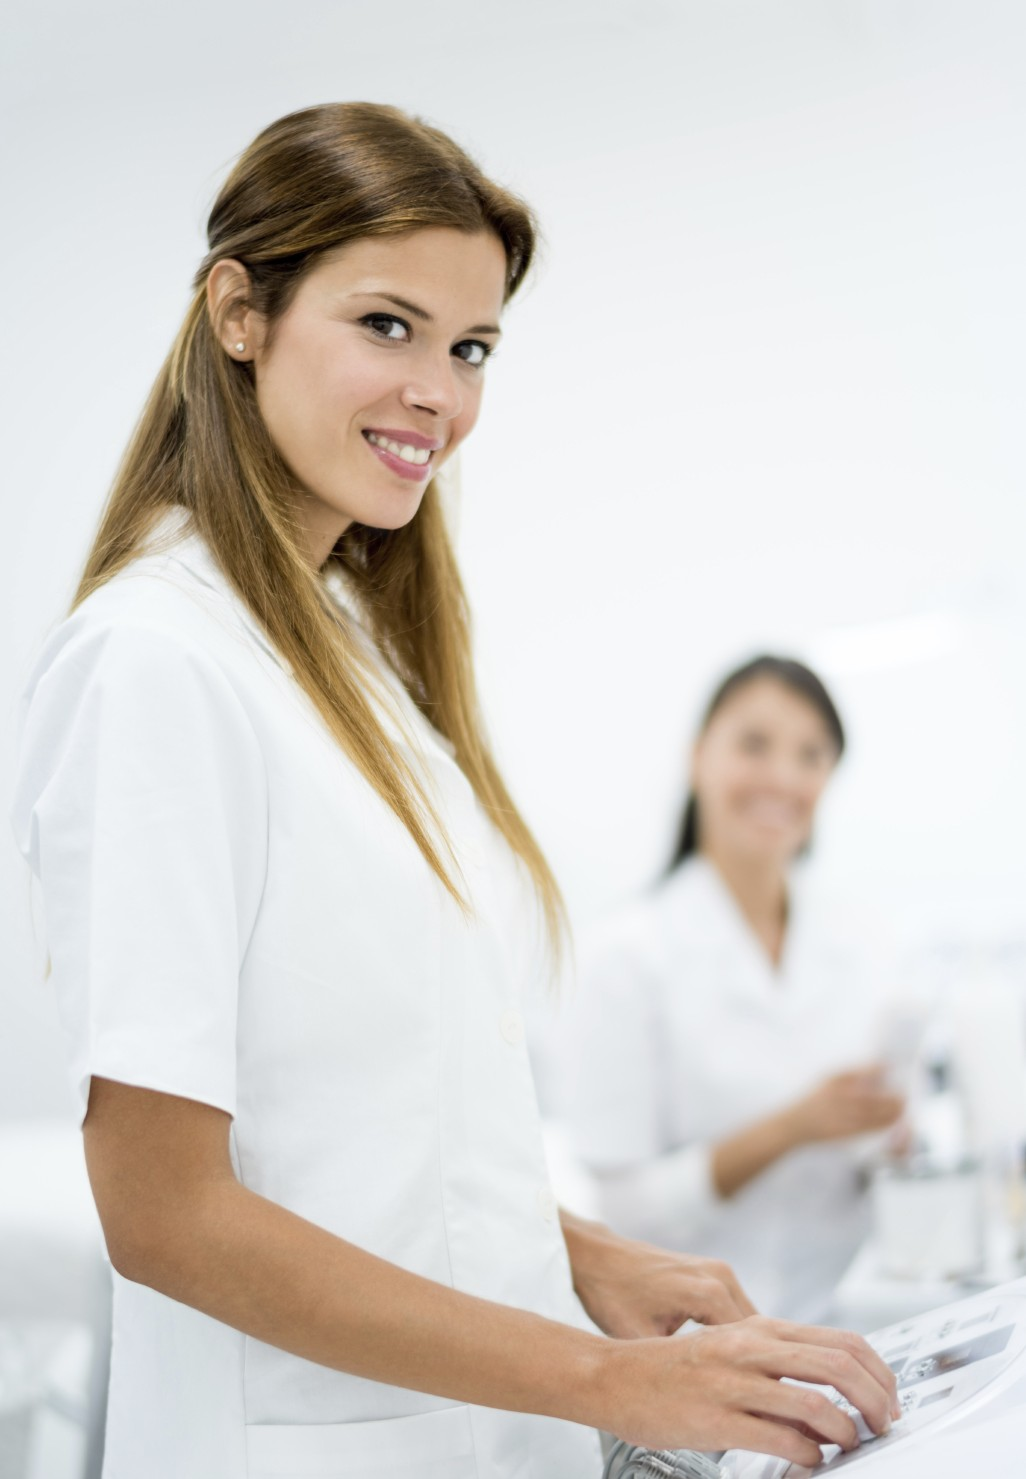 nurse working skin rejuvenation Melbourne